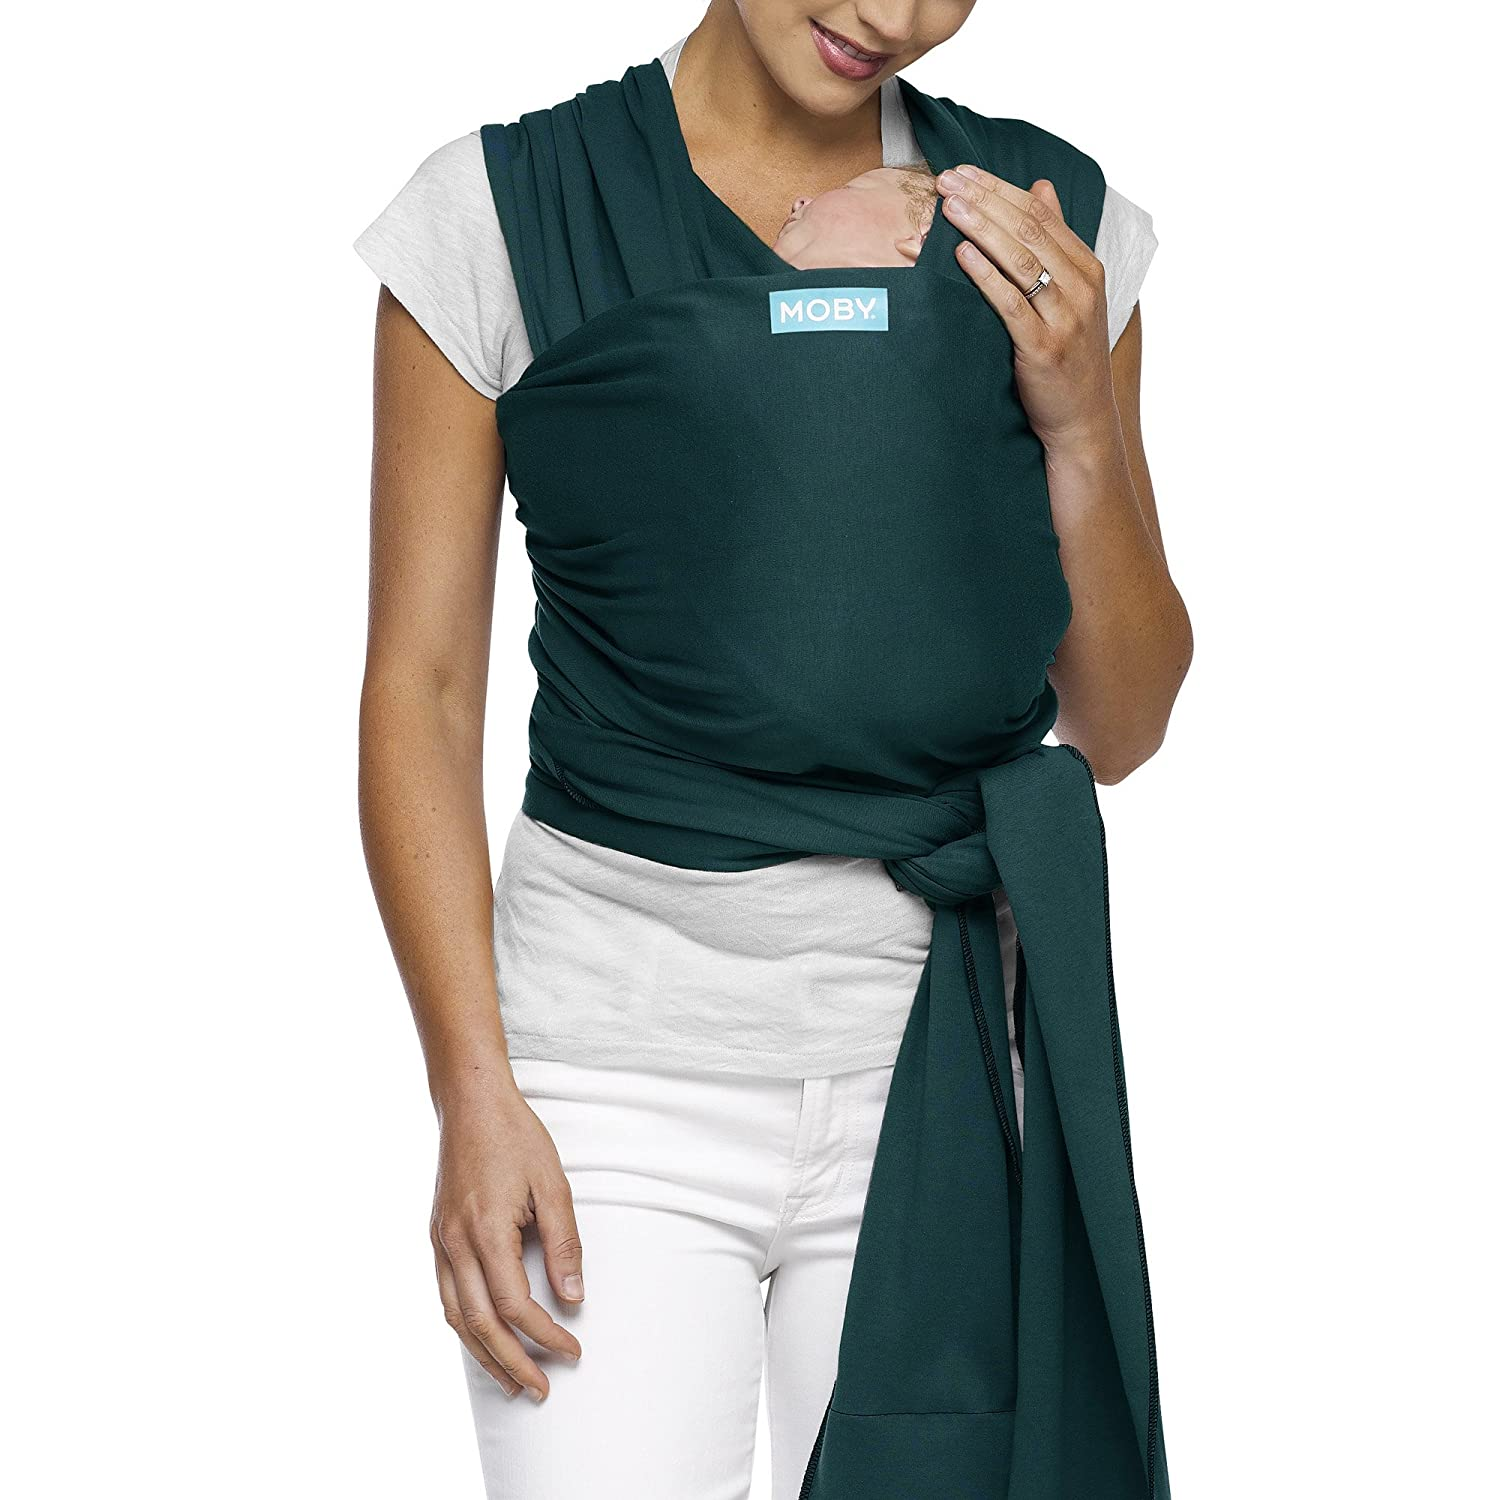 5b413cc8c1e Amazon.com   Moby Classic Baby Wrap (Pacific) - Baby Wearing Wrap For  Parents On The Go - Baby Wrap Carrier For Newborns